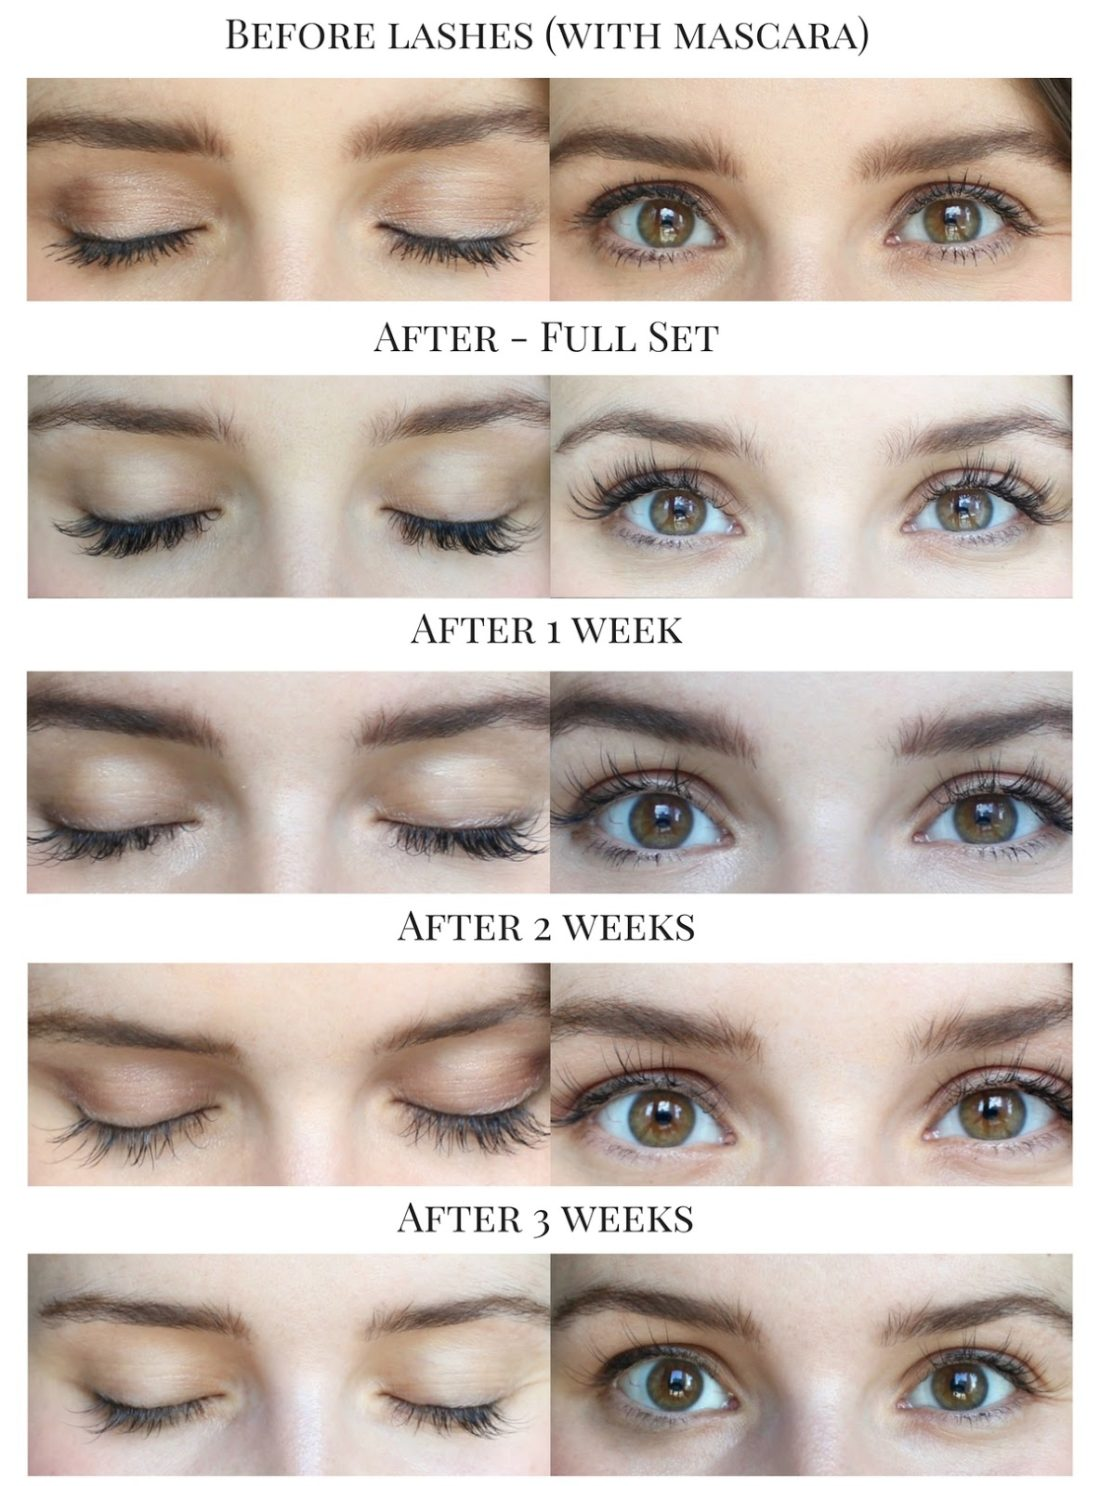 10 Things To Know Before Getting Eyelash Extensions Medicine